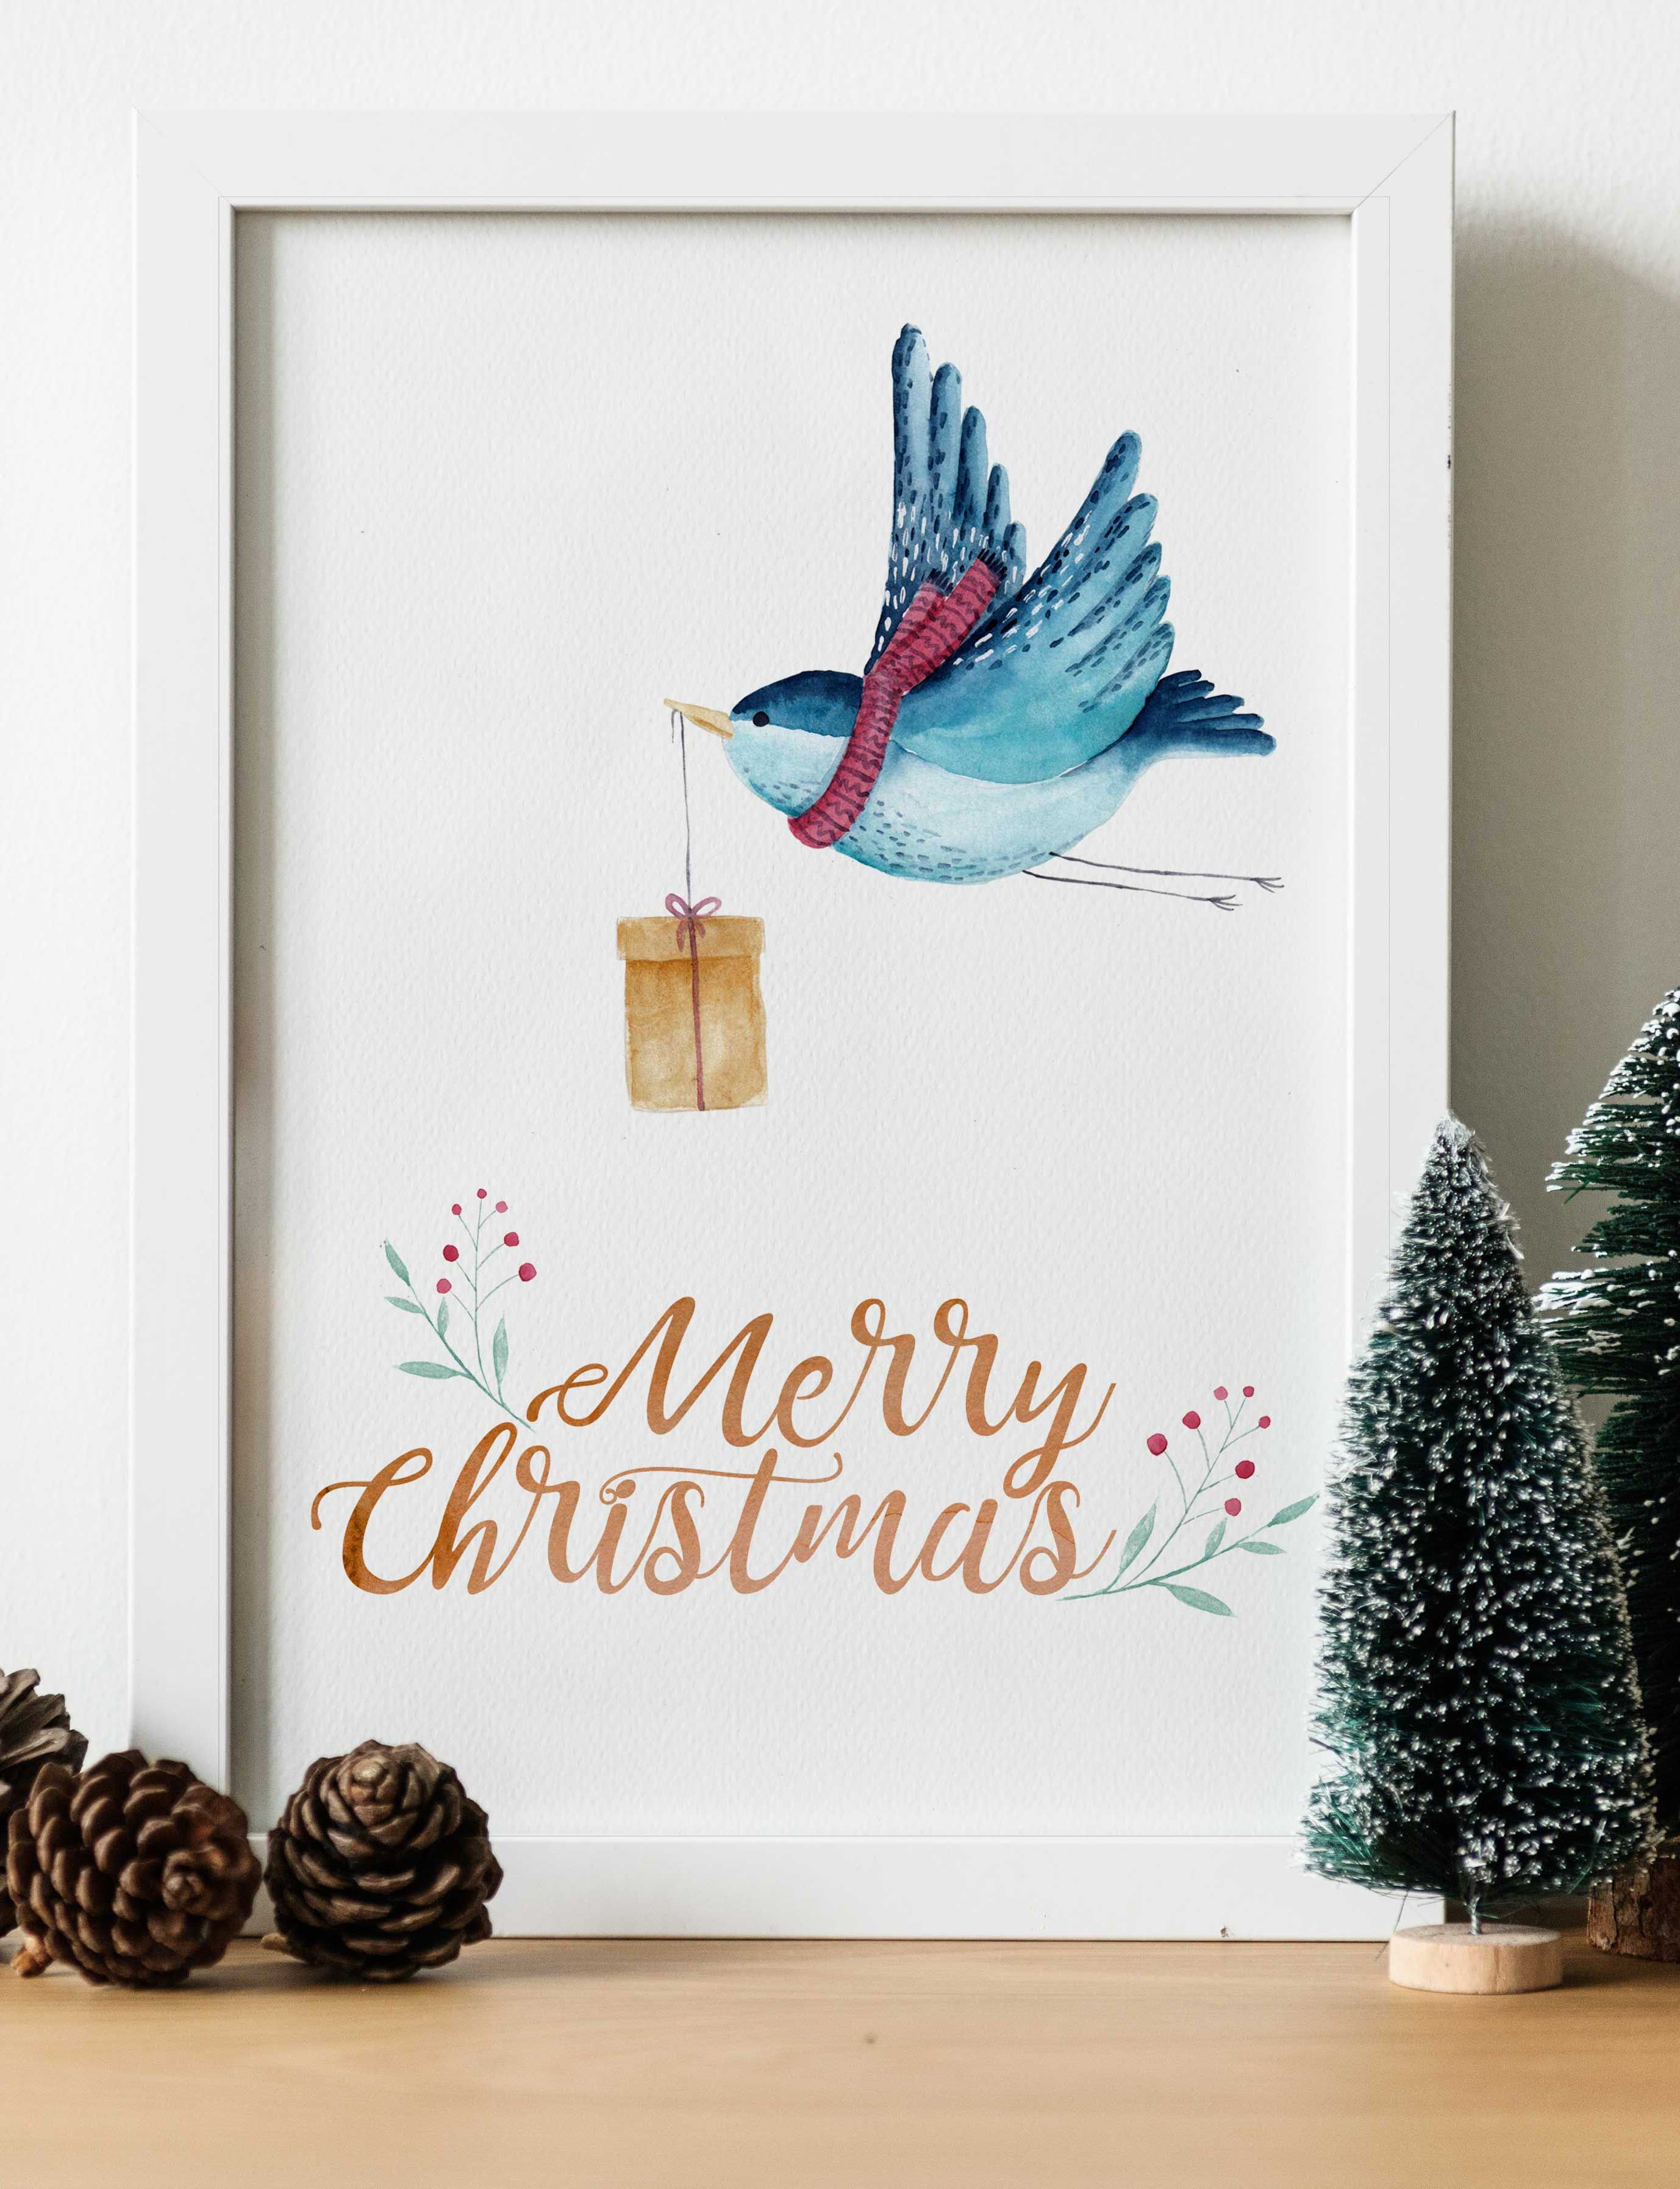 Cute Blue Bird With A Gift Will Be Great Christmas Decor Addition Decorate Your Living Room Or Office This Festive Wall Art